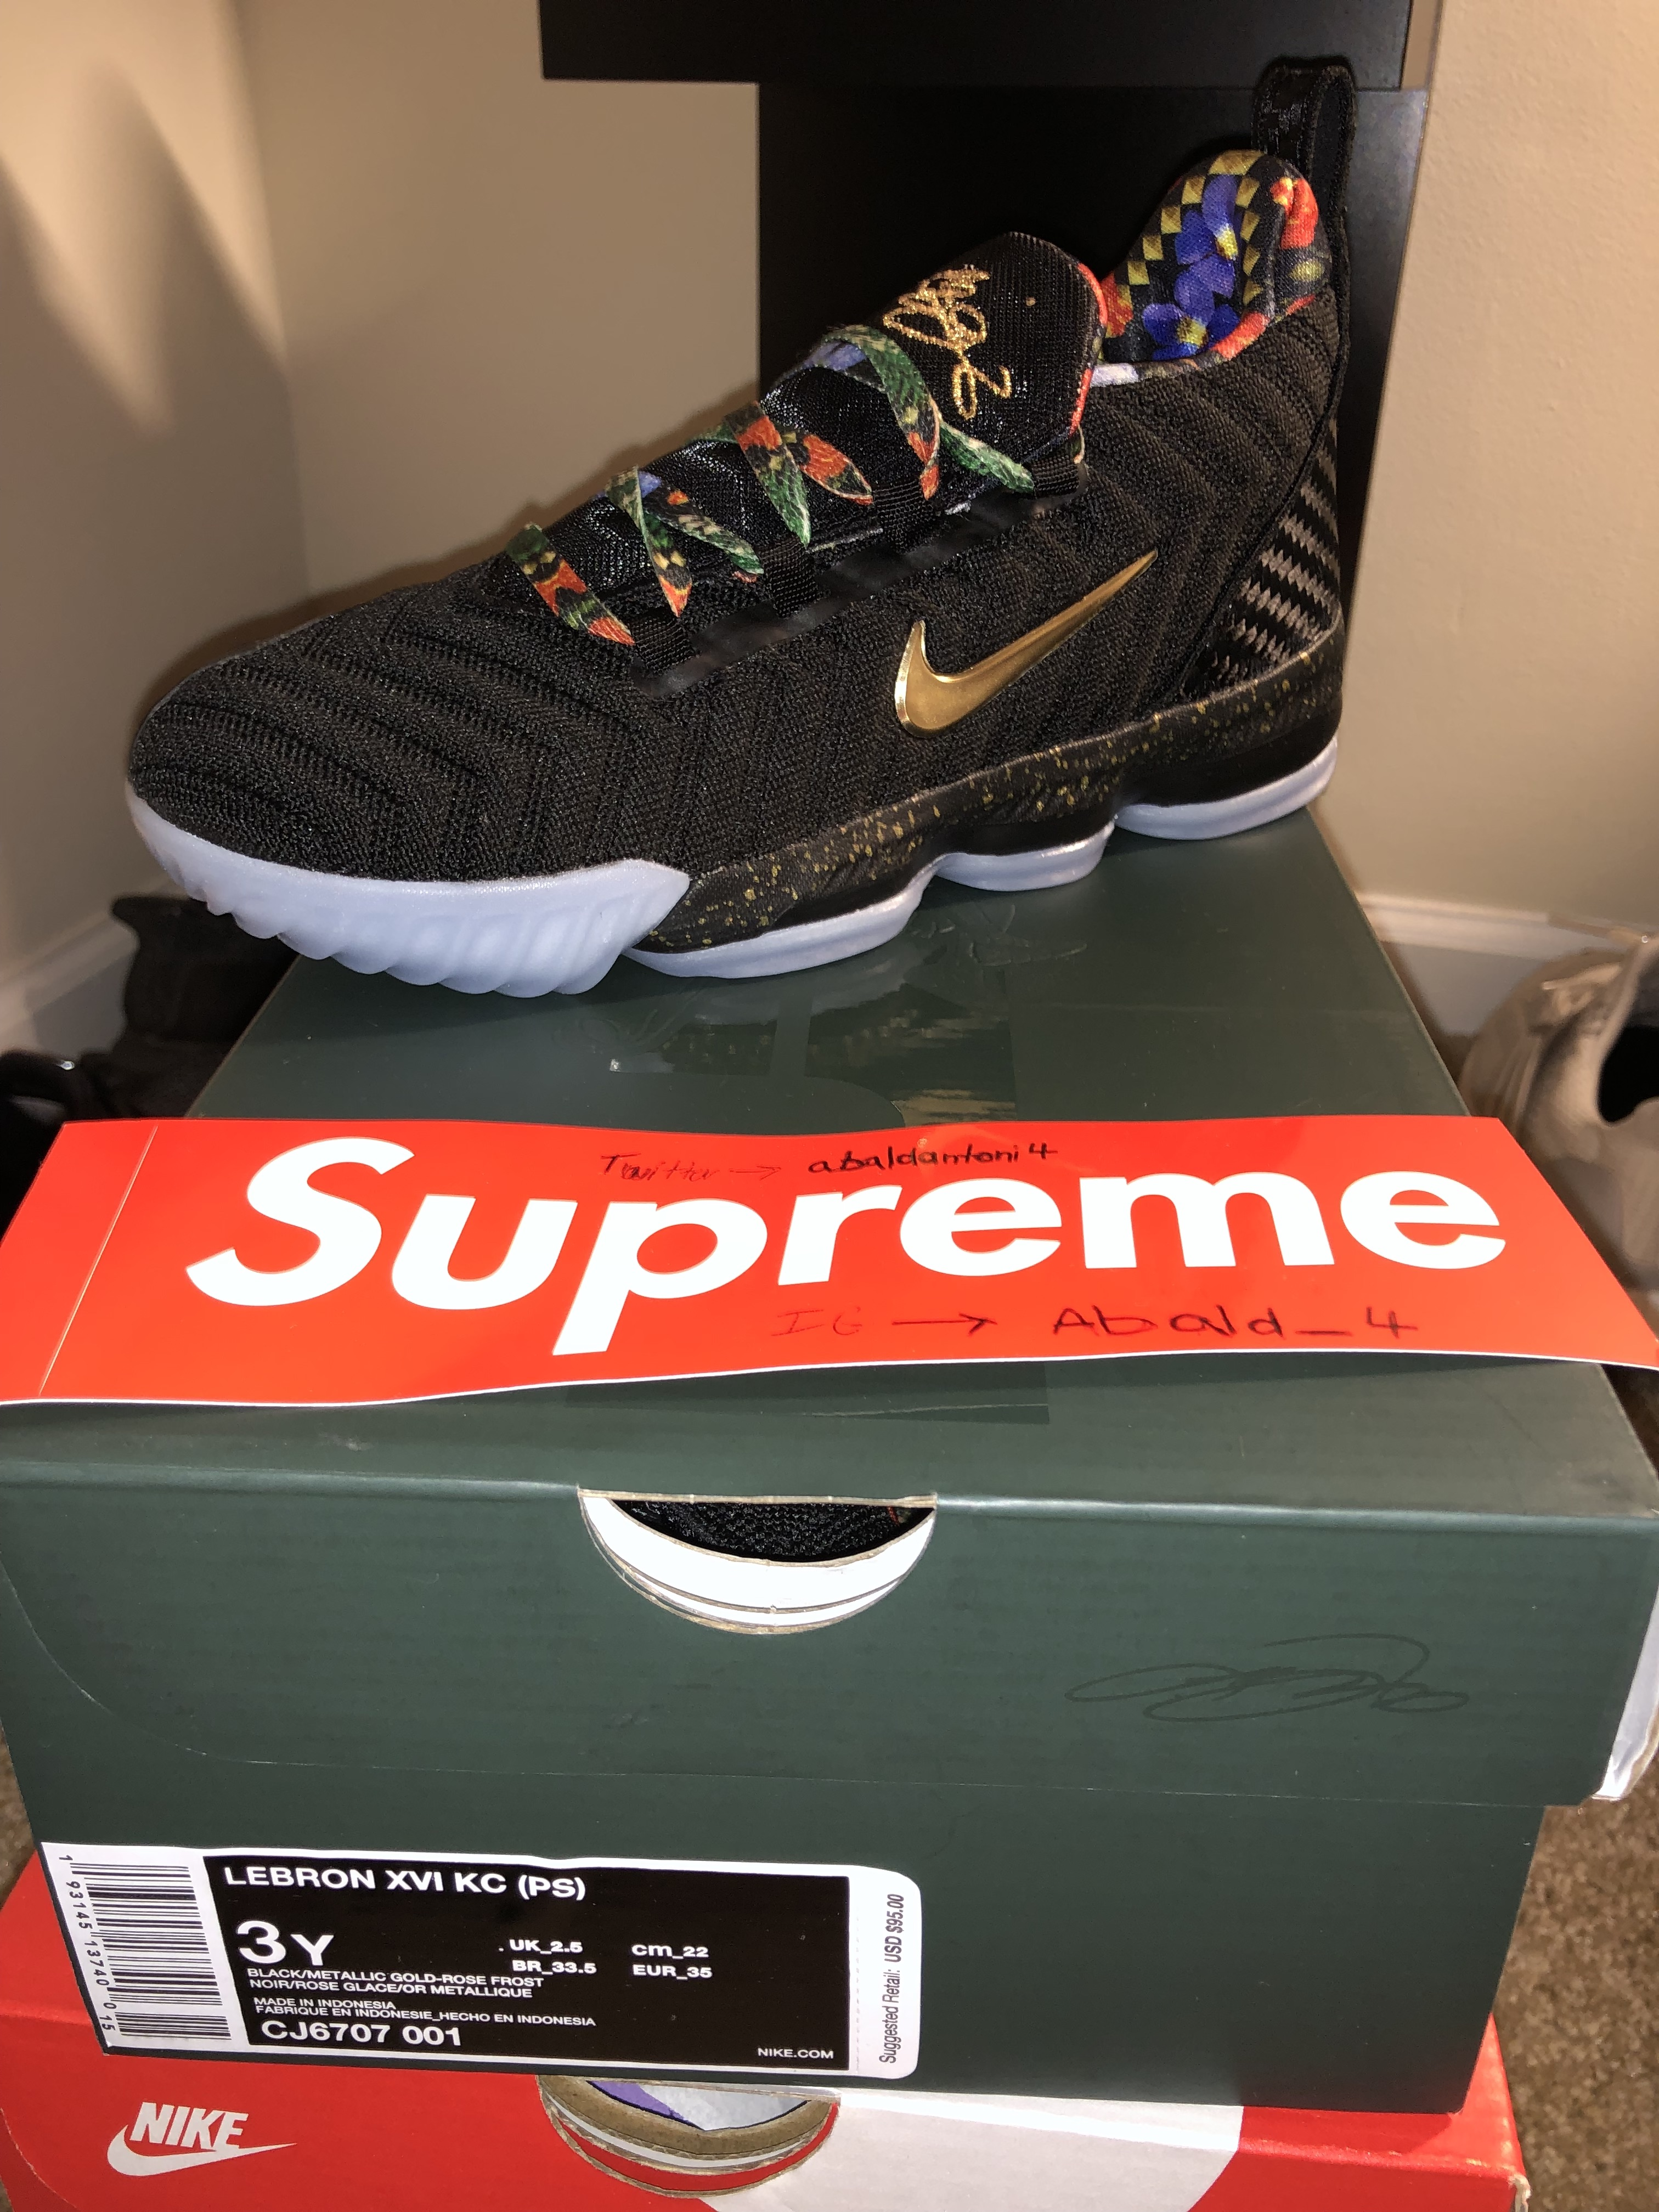 110f9d9013f Nike Nike Lebron 16 Watch The Throne (PS) Size 5 - Low-Top Sneakers for  Sale - Grailed